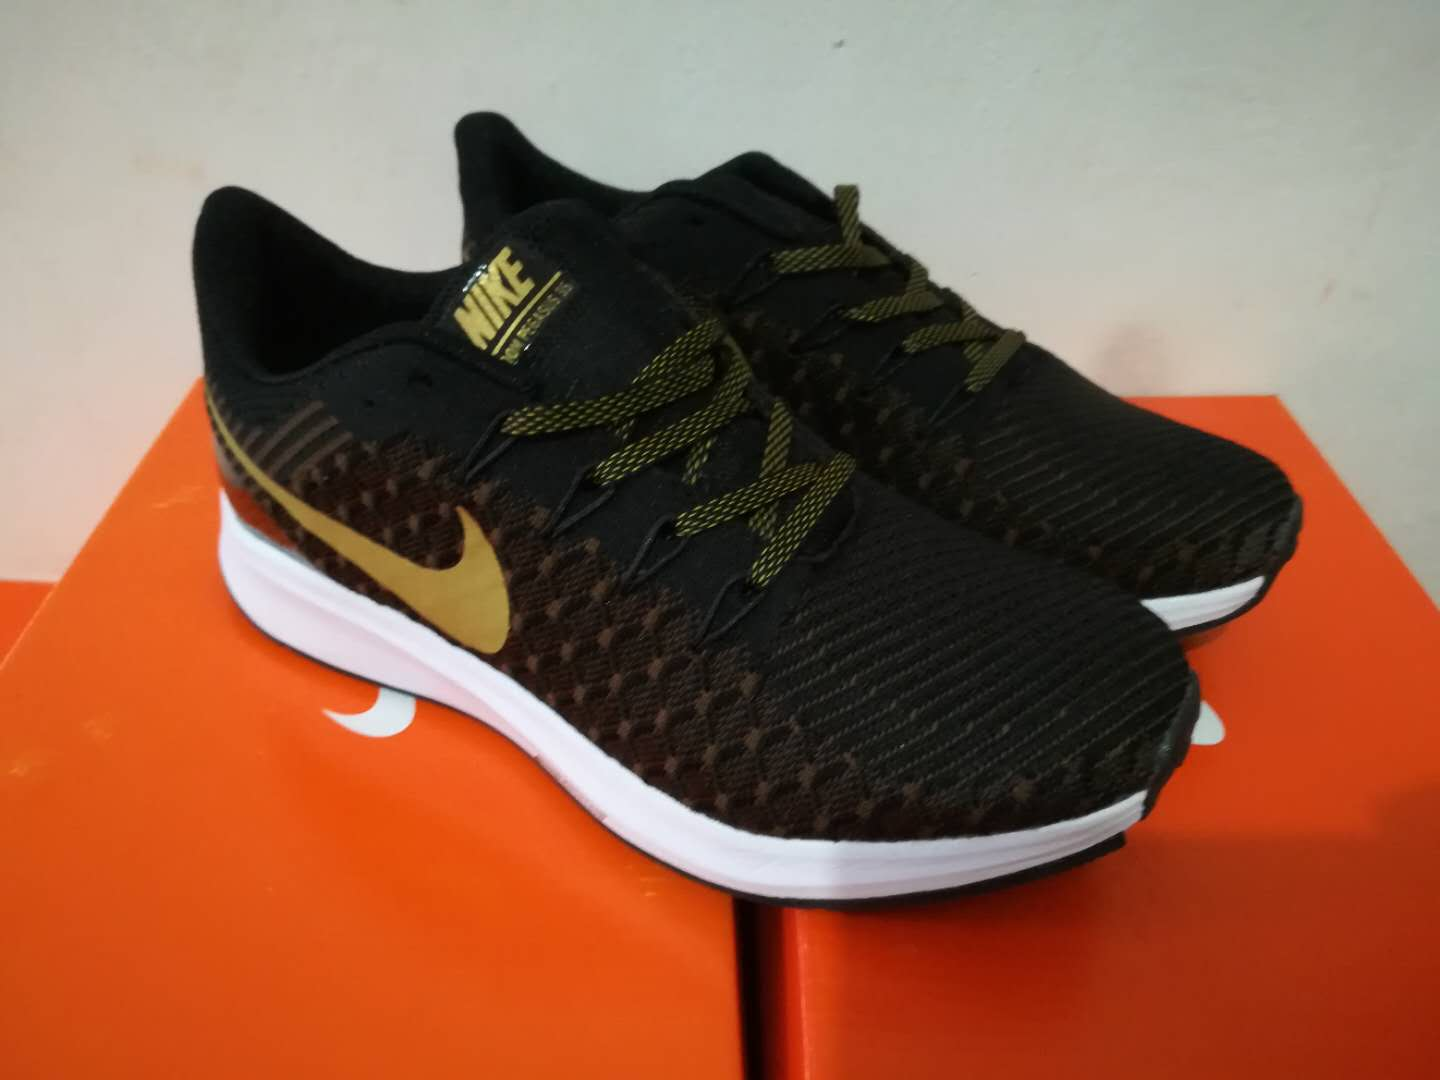 Nike Flyknit Lunar 2 iD Black Gold White Shoes